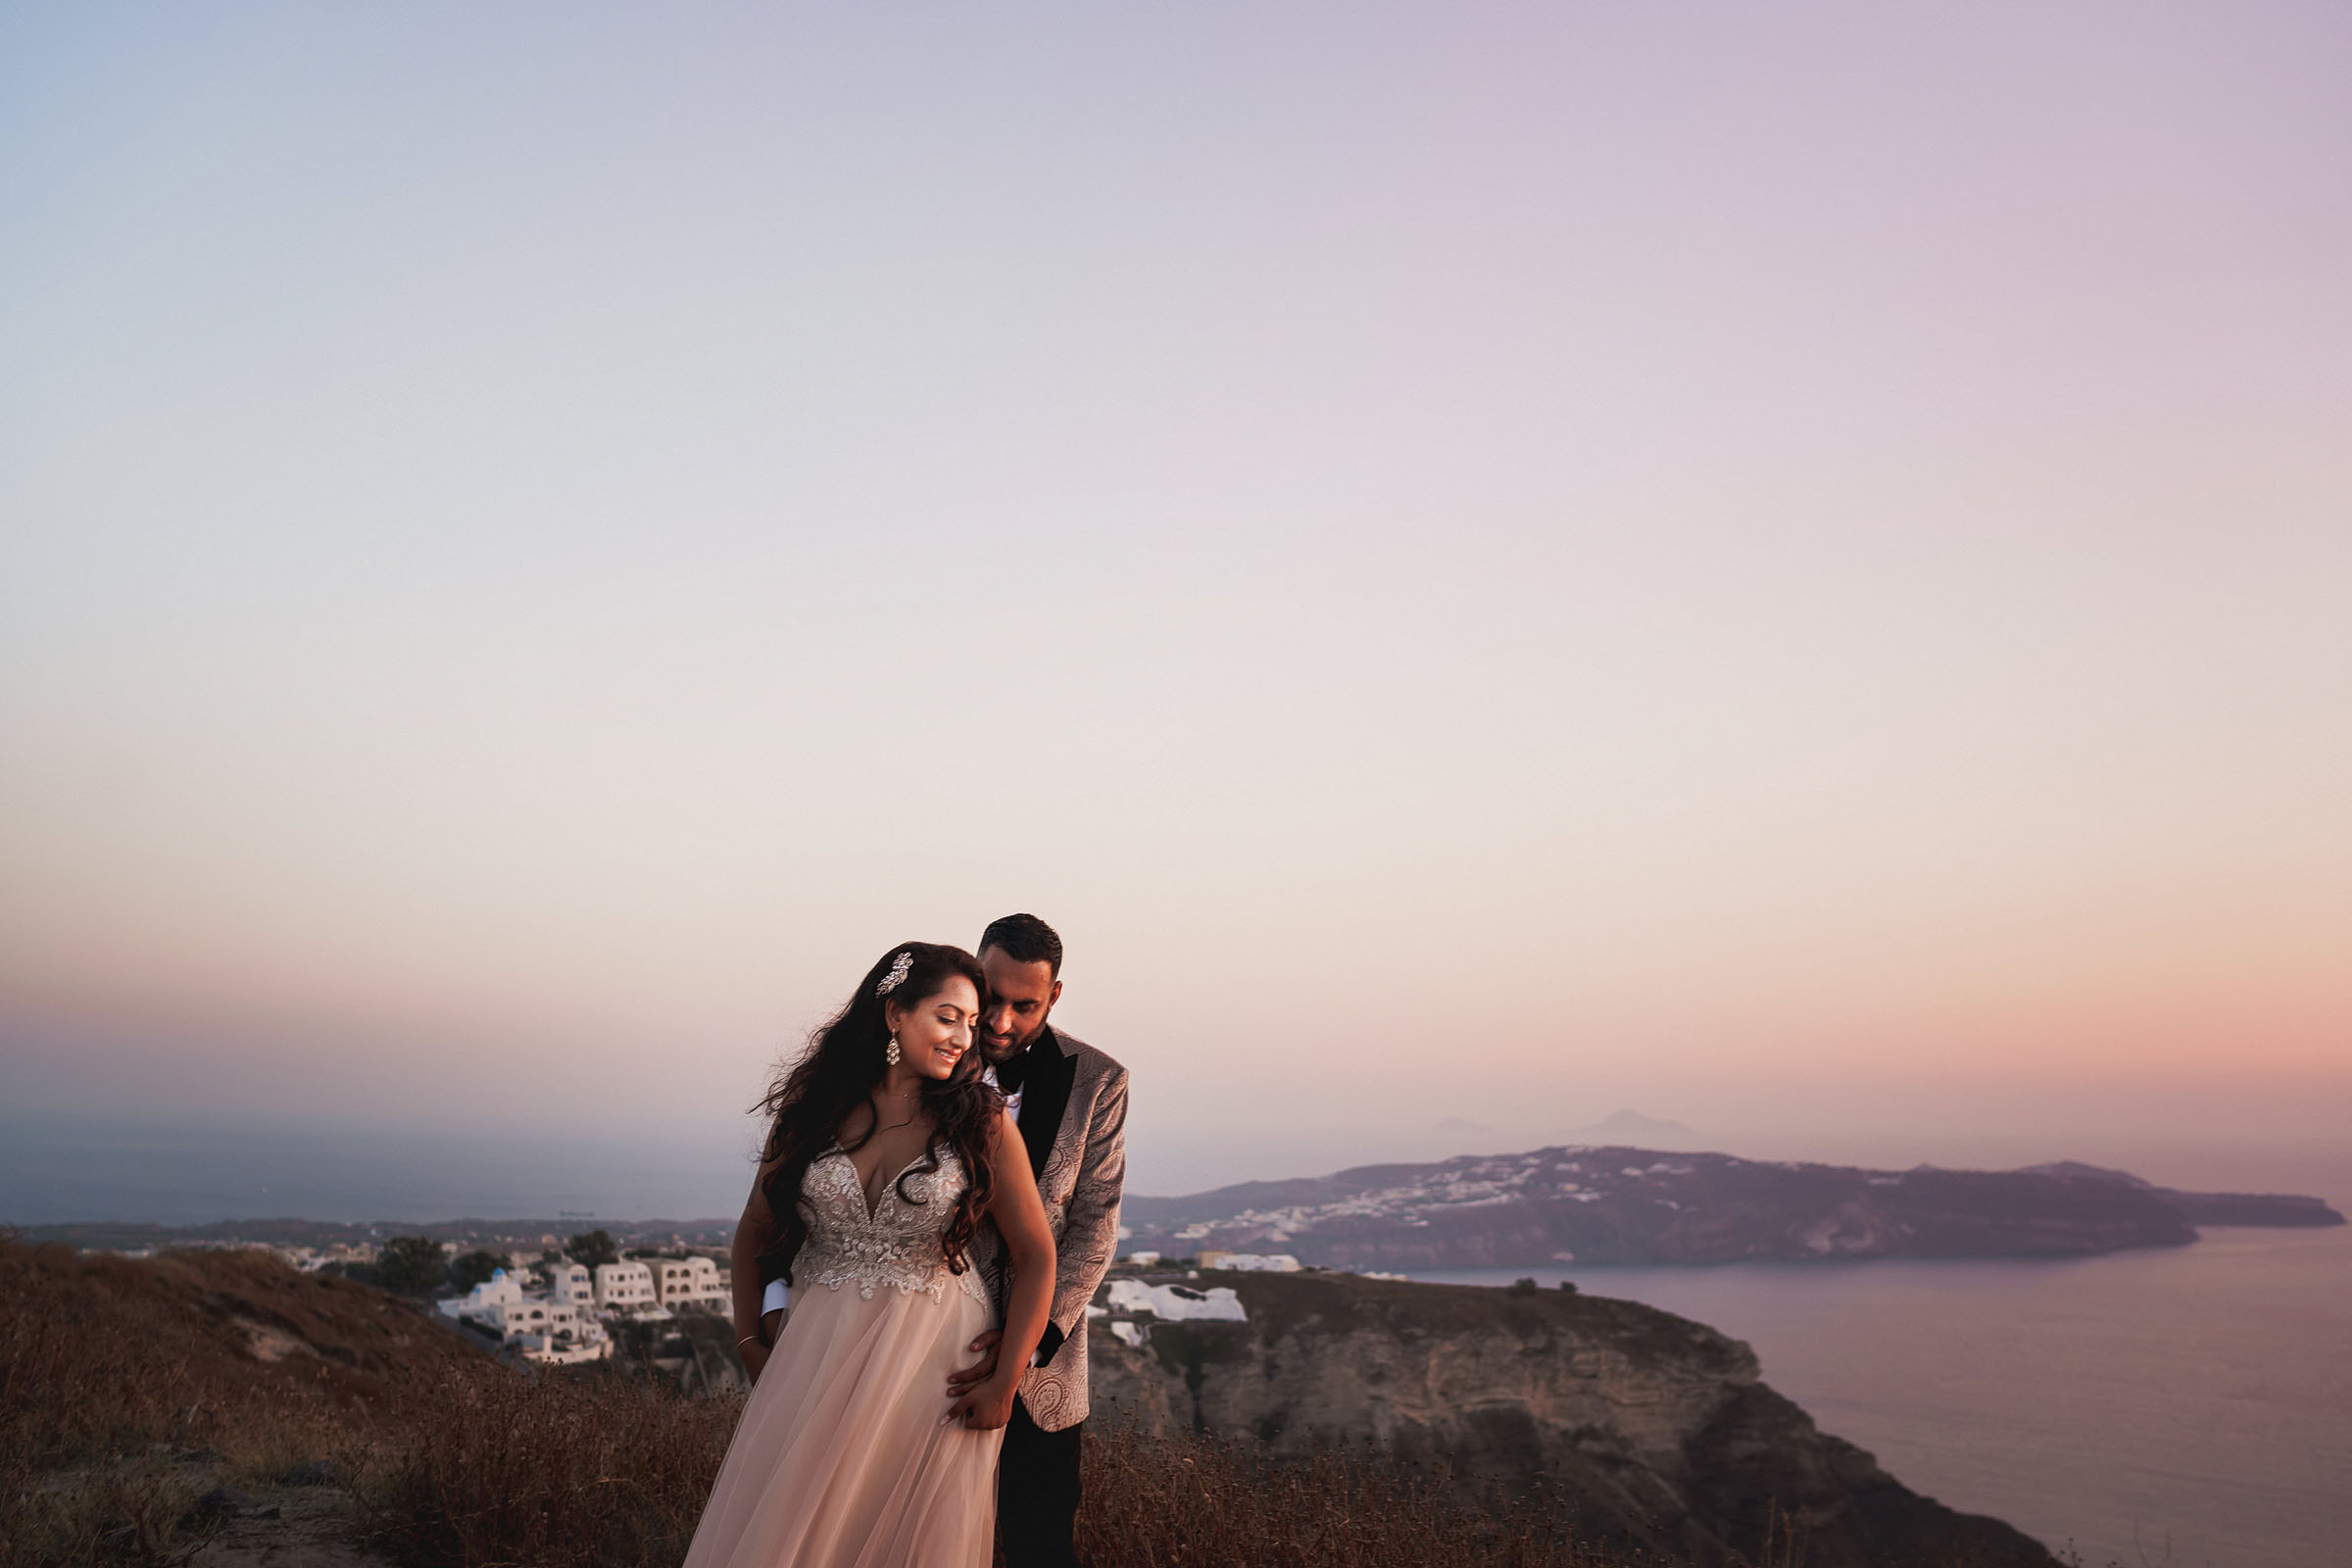 Landscape portrait with bride and groom -photo by F5 Photography